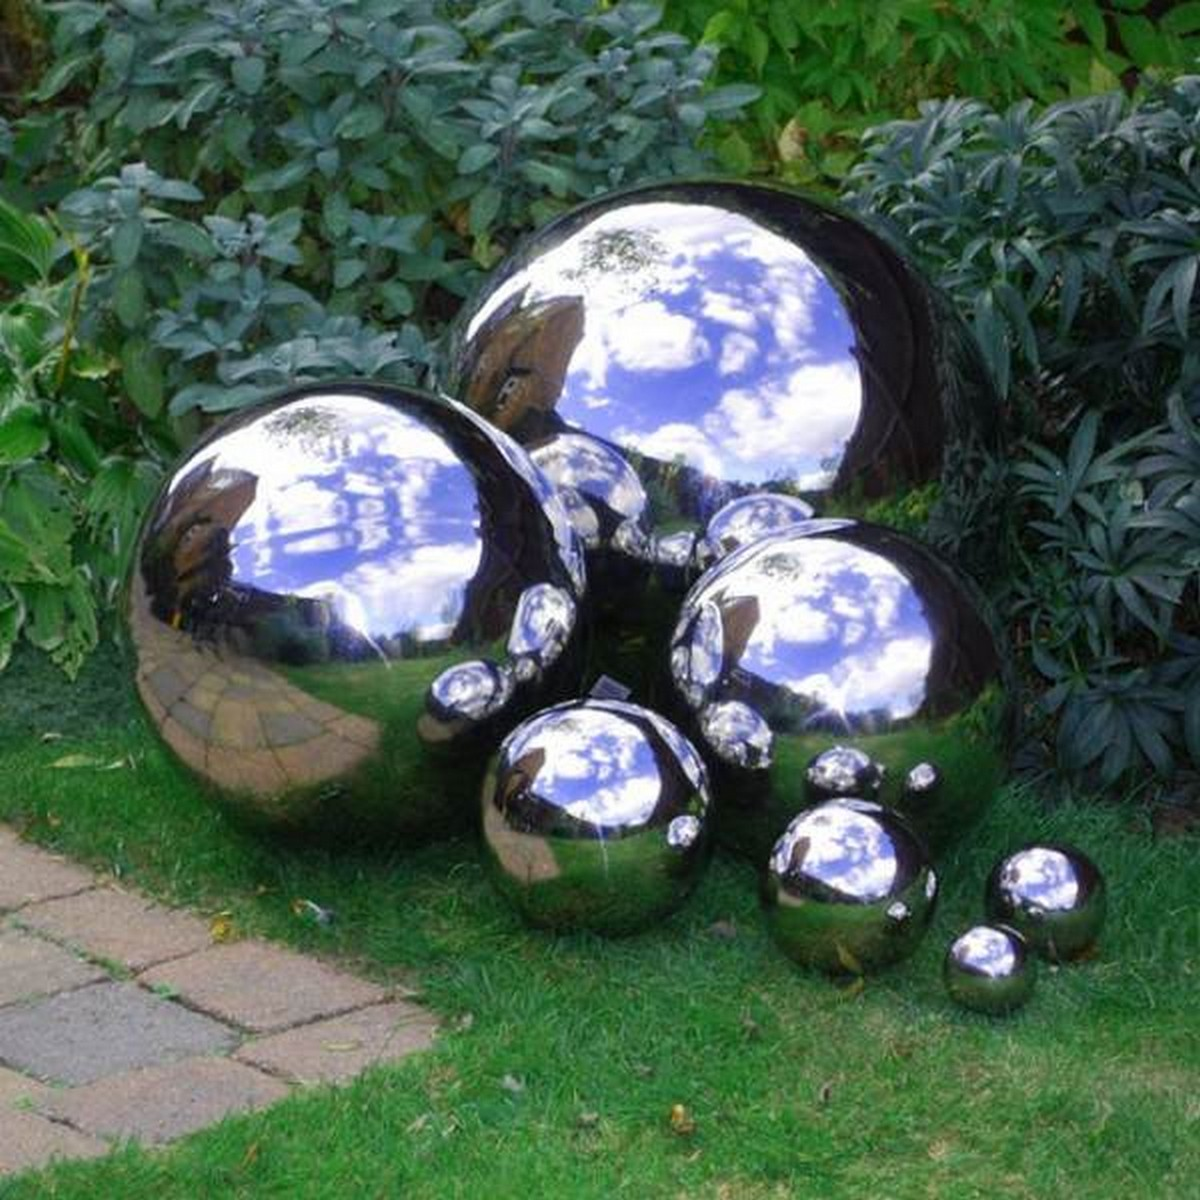 A gazing ball in the garden adds color and sparkle, plus it reflects the beauty of your flowers and the surroundings.